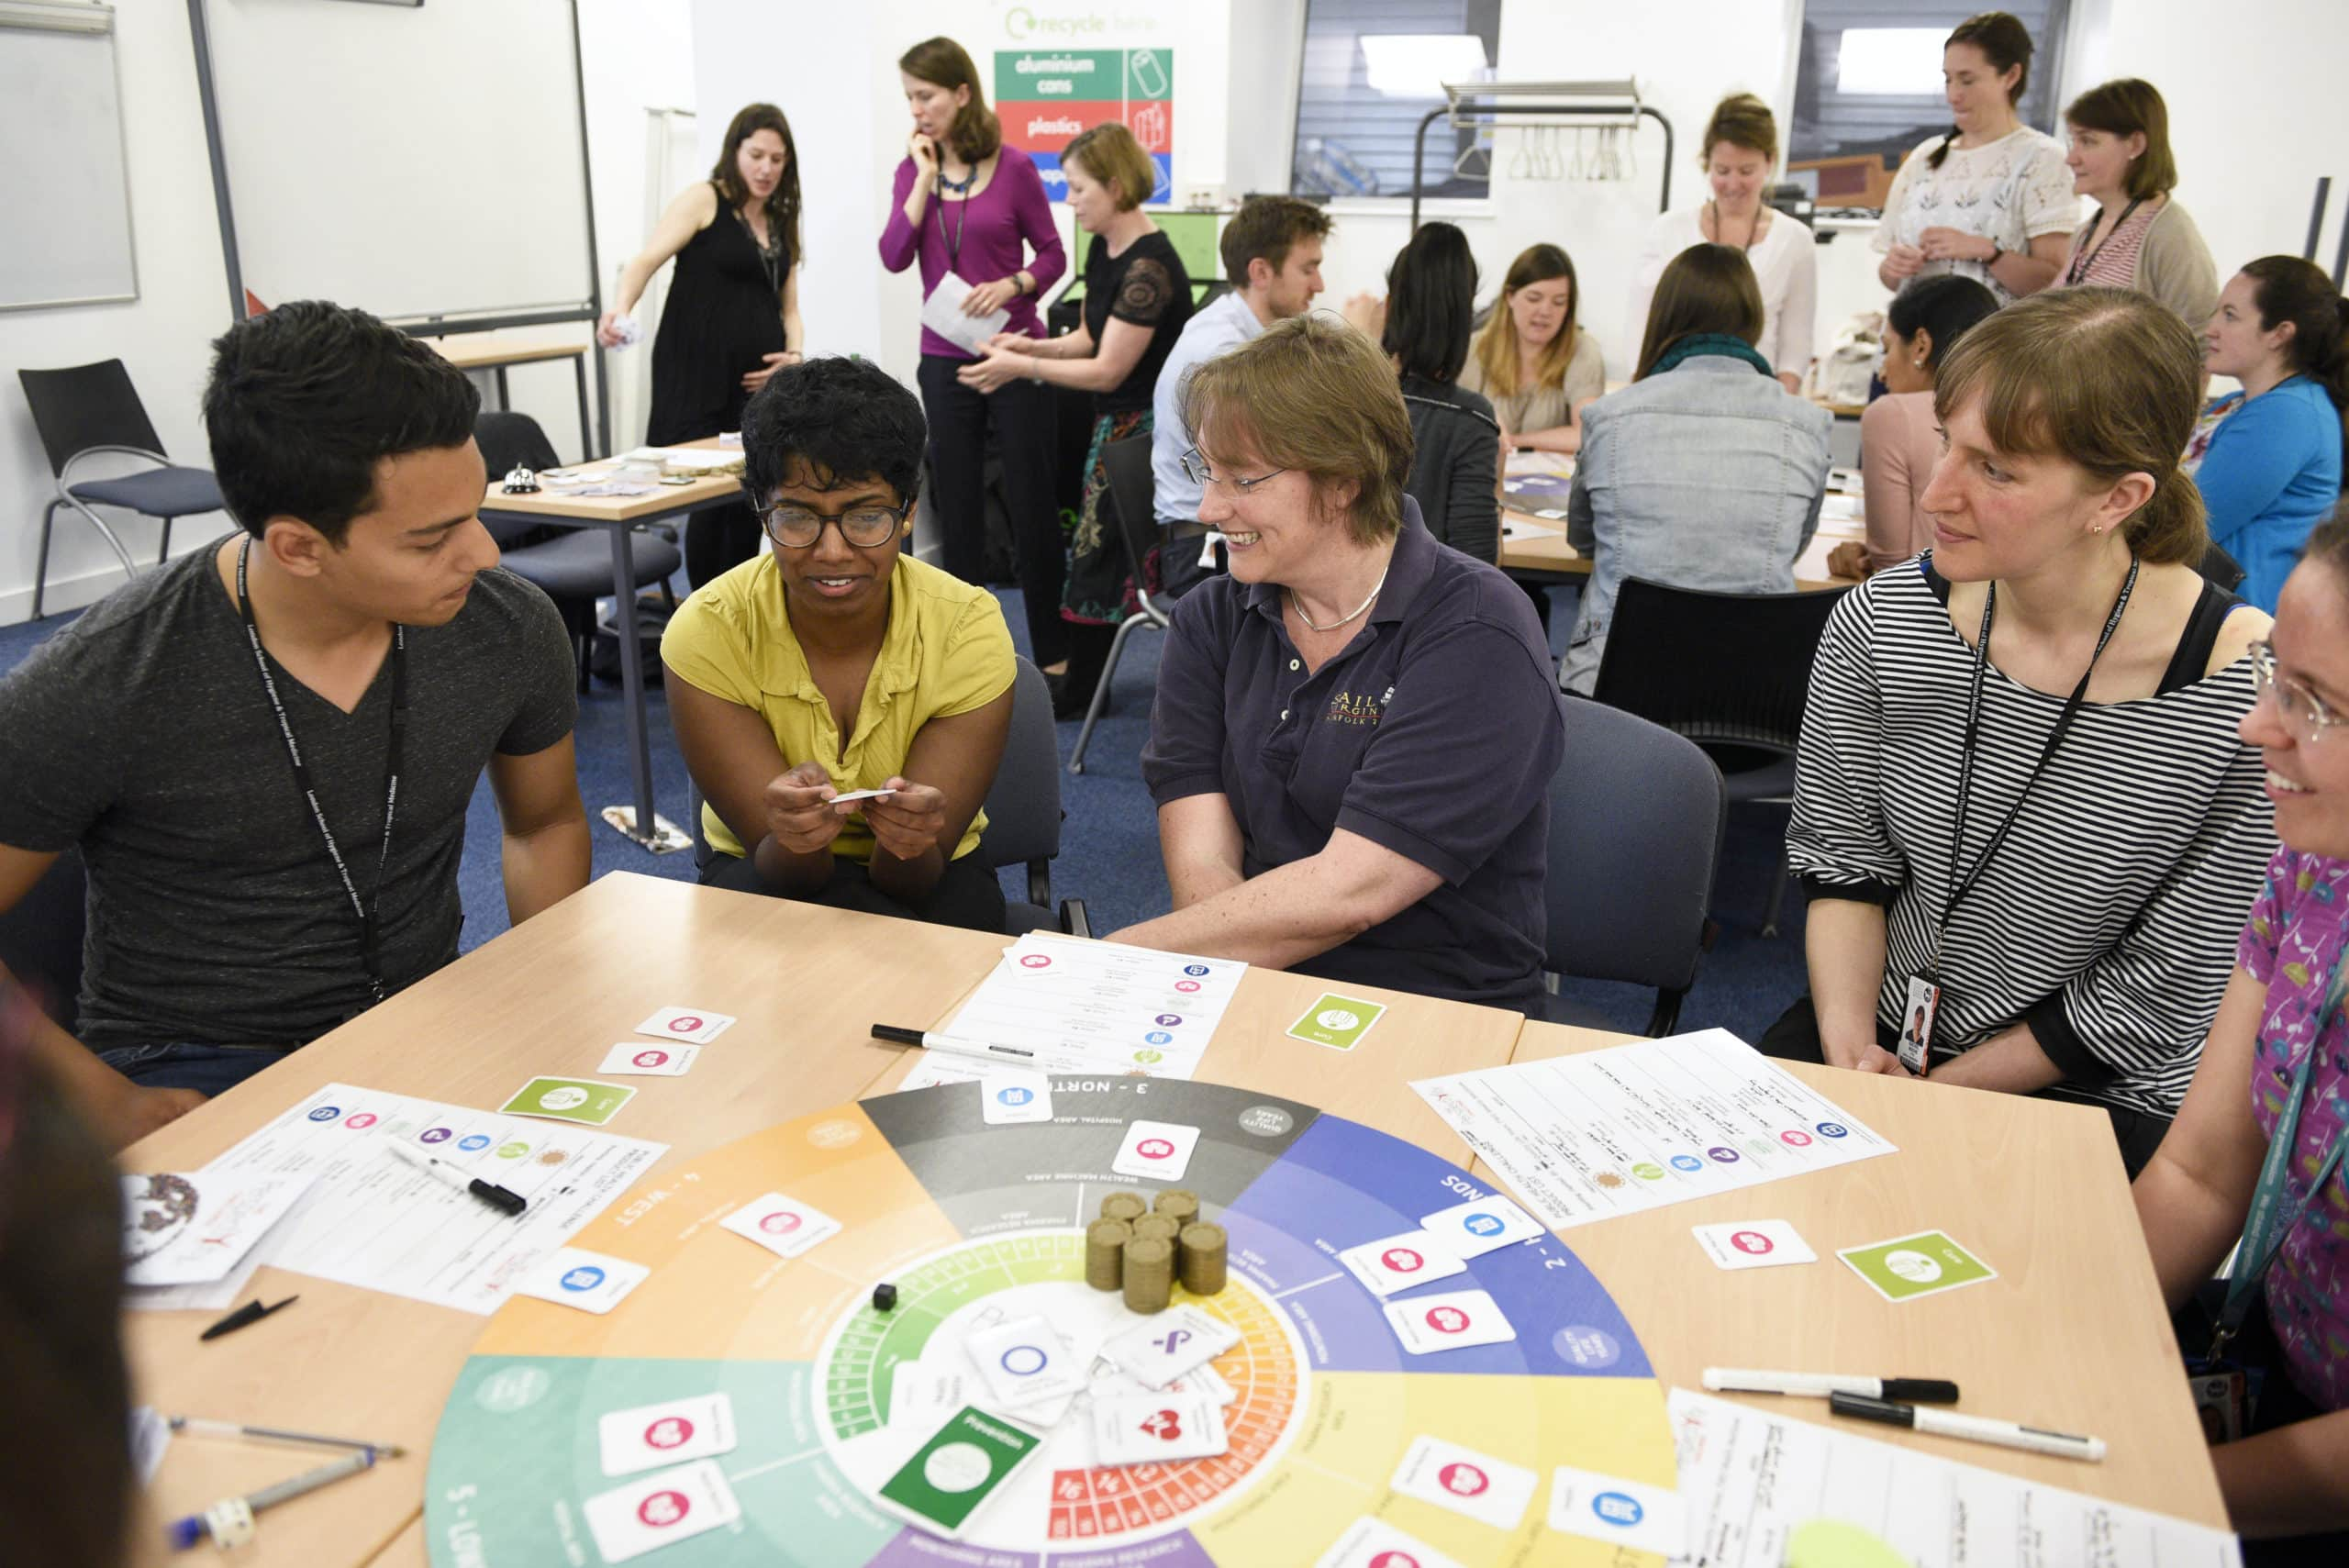 The Public Health Challenge as part of the Masters of Public Health at the London School of Hygiene and Tropical Medicine